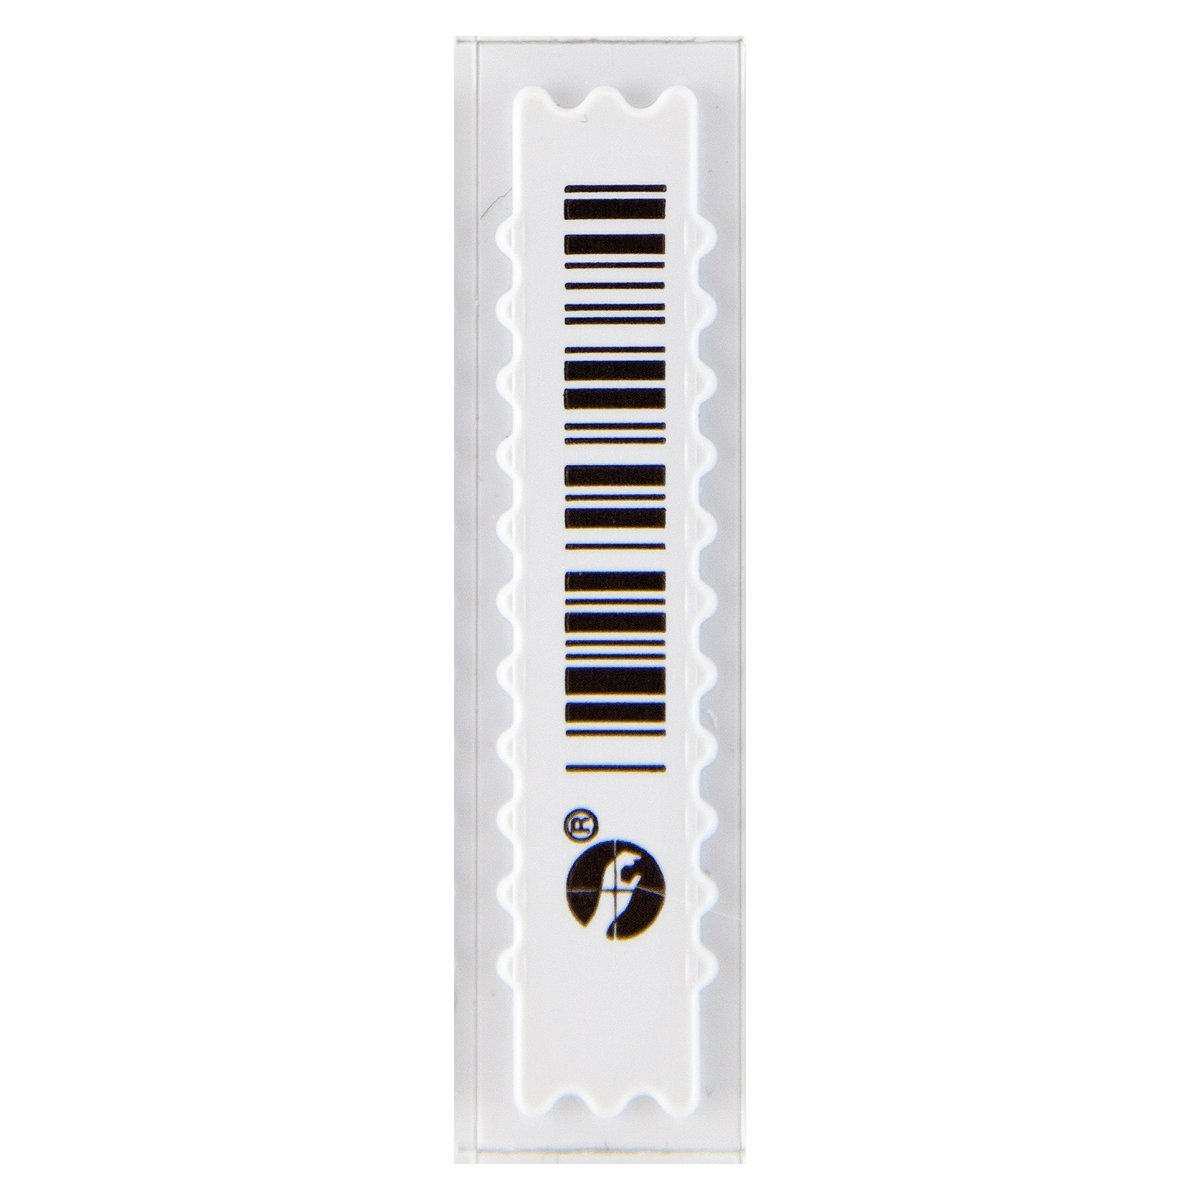 Sensormatic APX Fake Barcode Label Pack of 5000